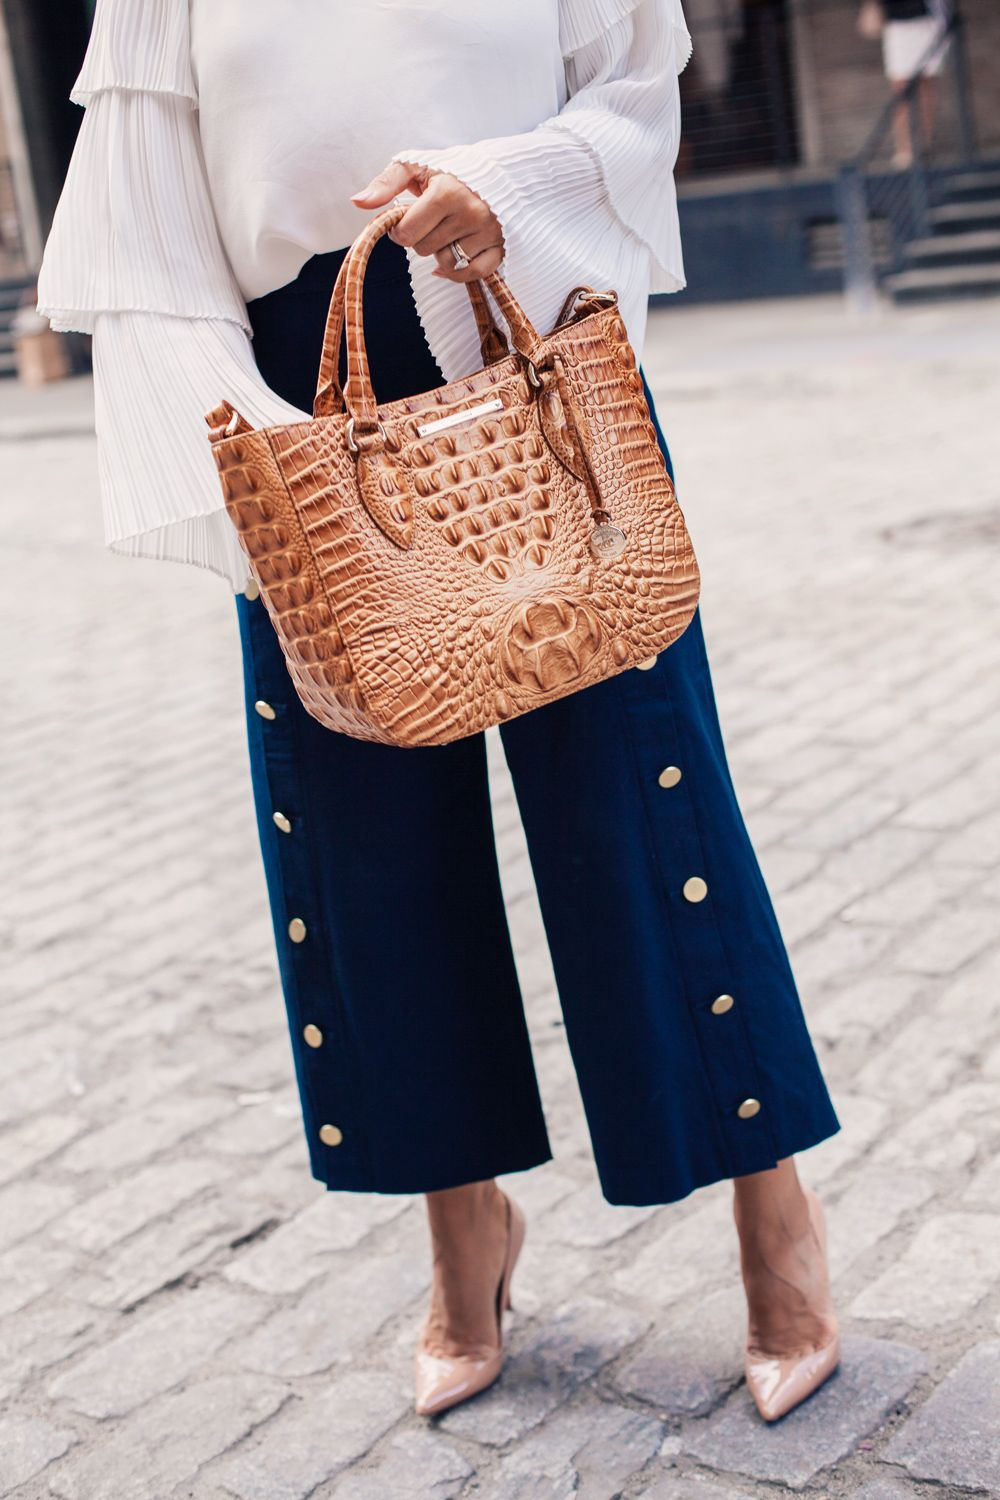 a3ab1060207f What to Wear to Work Workwear How to Style Petite Women Culottes Brahmin Bag  White Blouse Nave Pants Club Monaco NYC Fashion Blogger Corporate Catwalk  ...